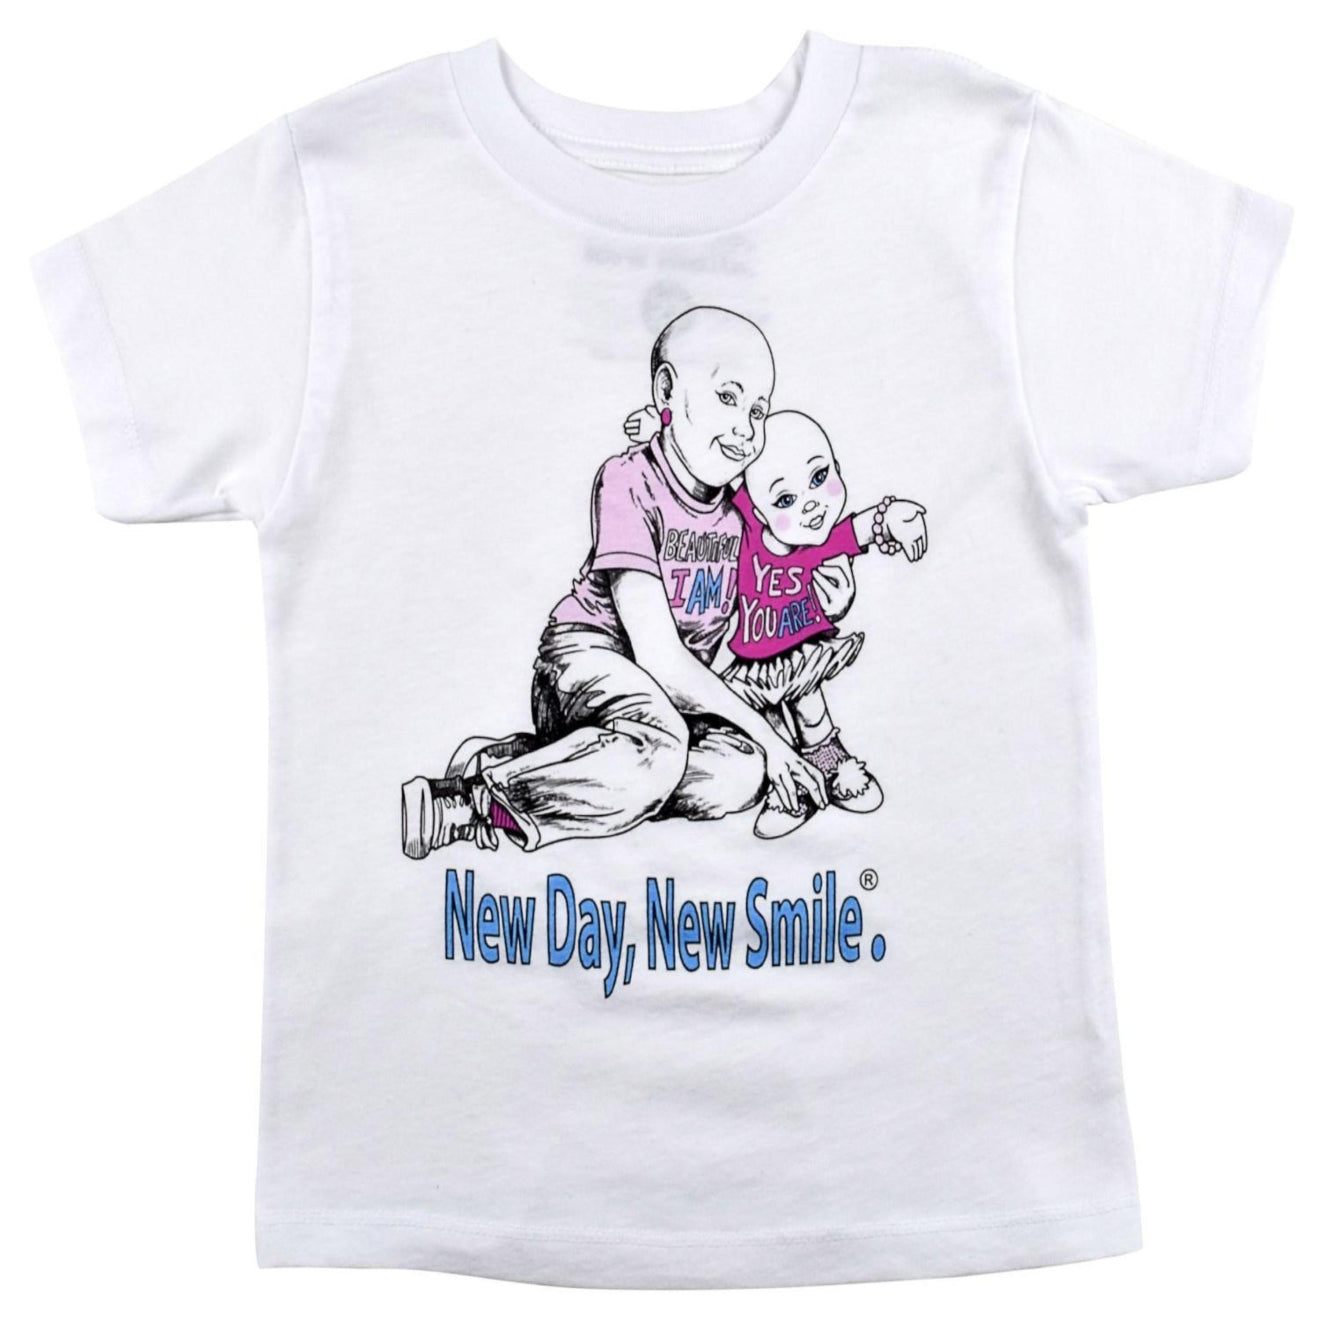 Girls, Boys, Children's Inspirational Cancer T-Shirt | New Day, New Smile.® Collection